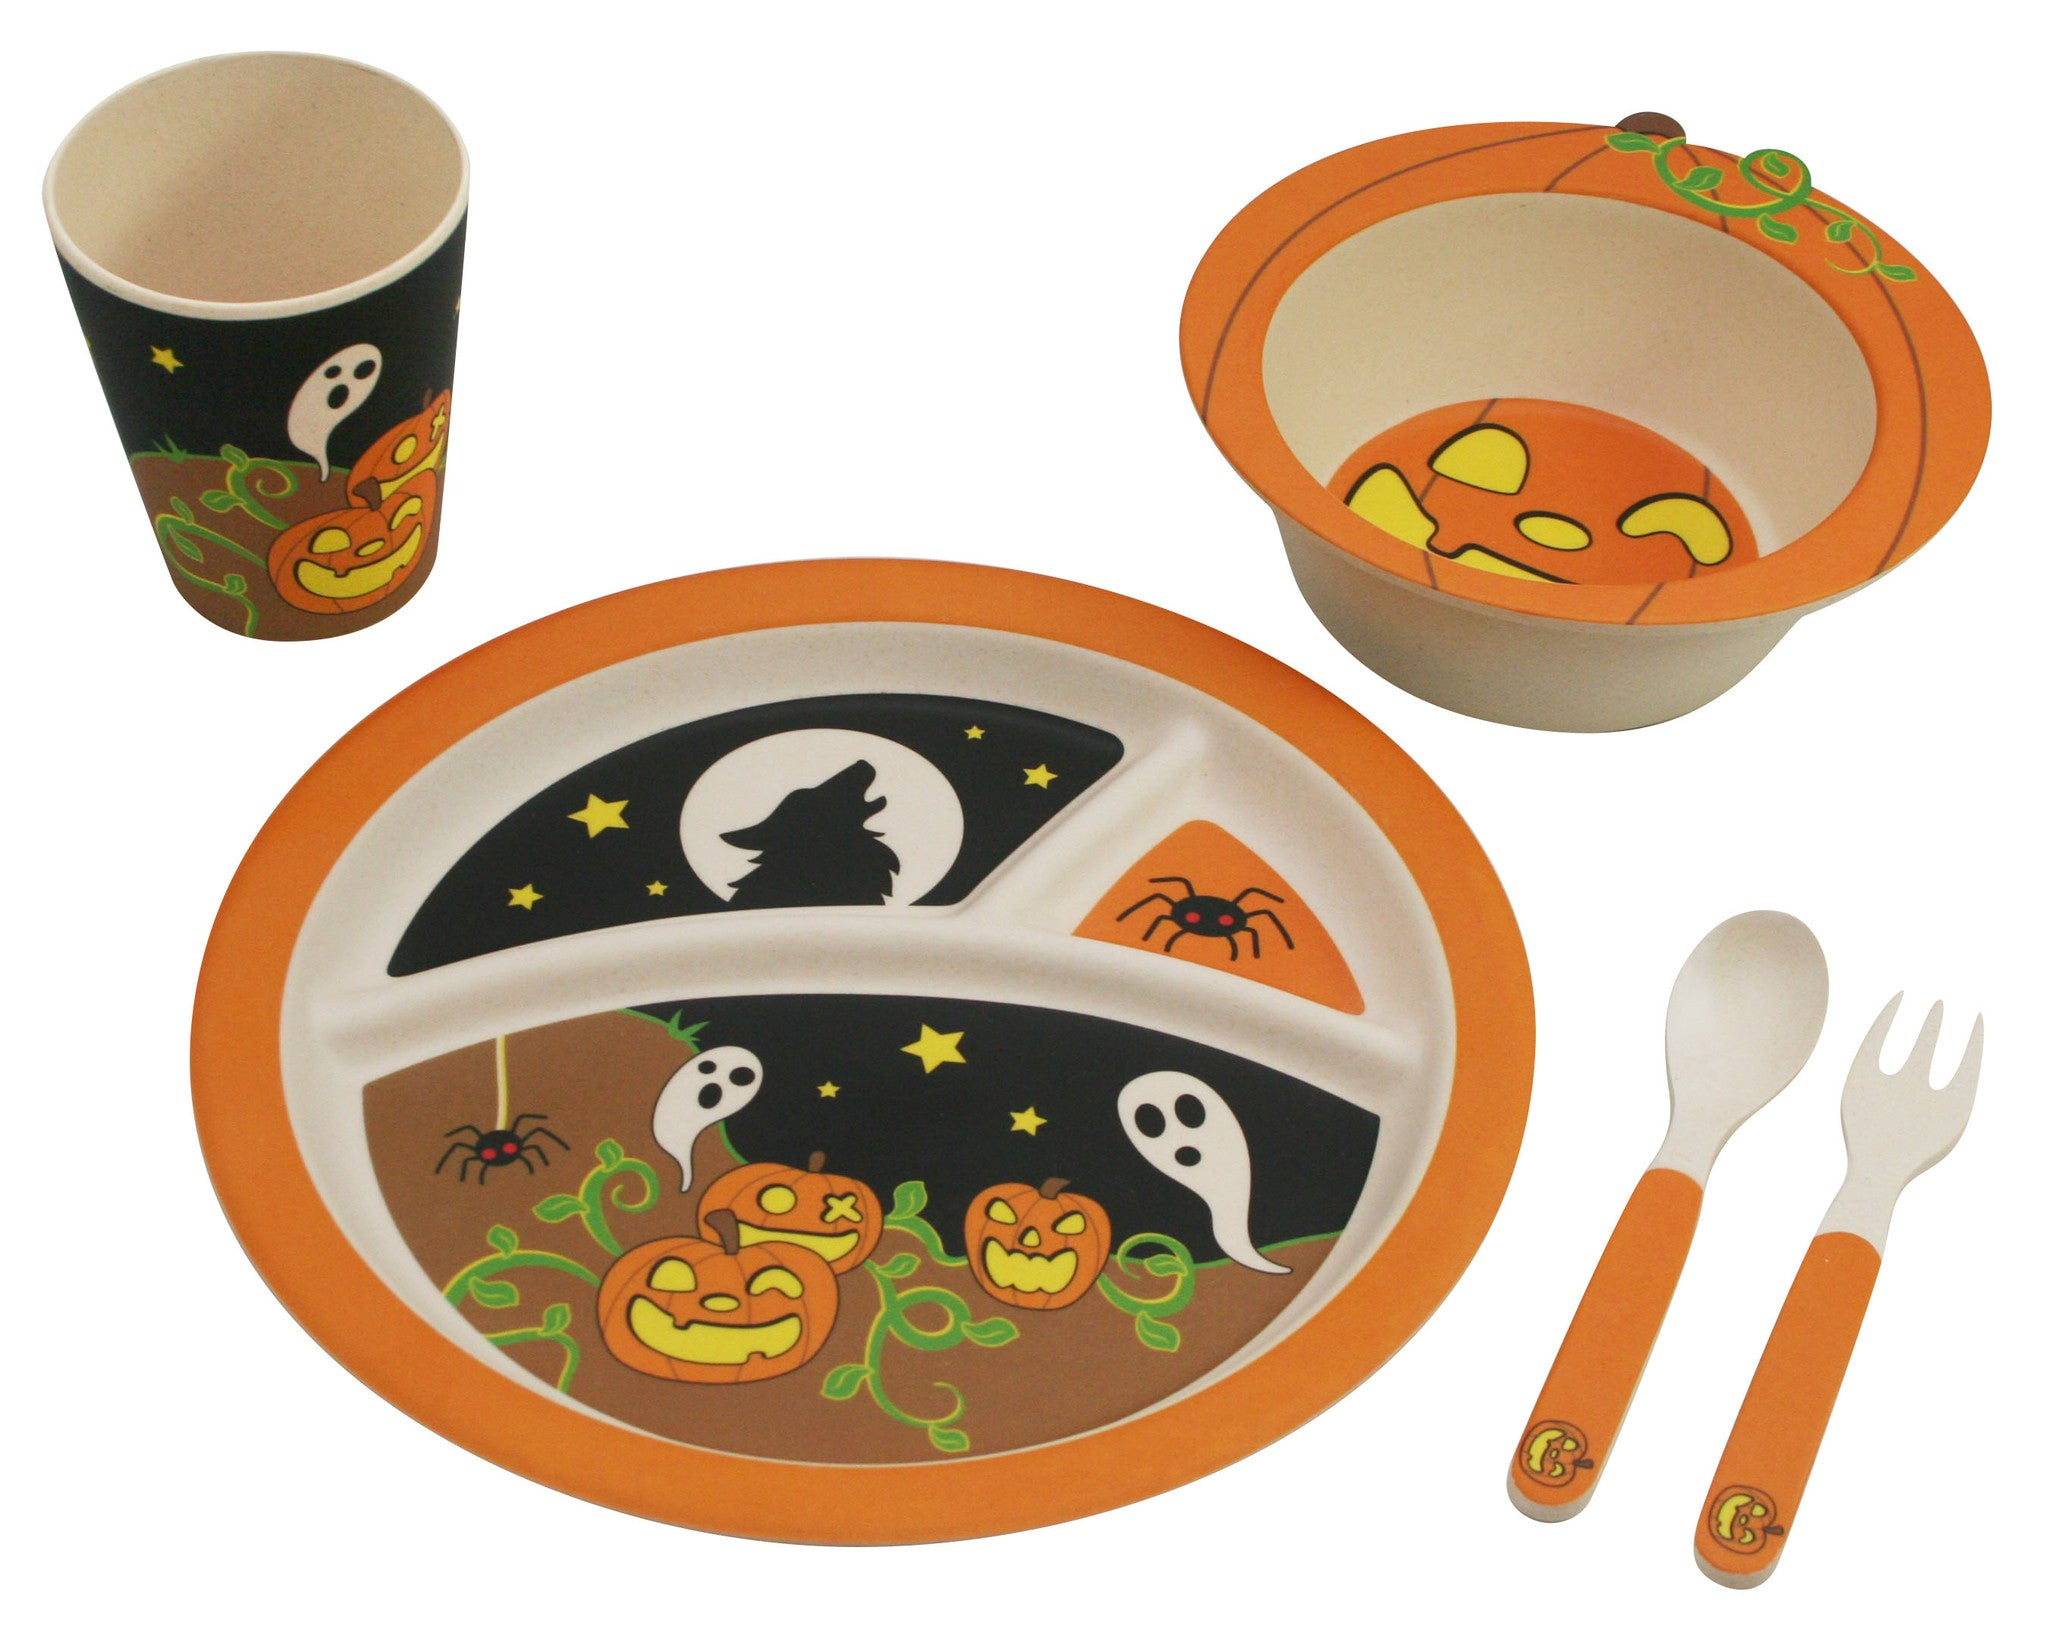 Bamboo Studio Babies/Kids/Toddlers Bamboo Dinnerware Set Halloween Pumpkin 5 Piece  sc 1 st  Paperless Kitchen : halloween dinnerware sets - pezcame.com